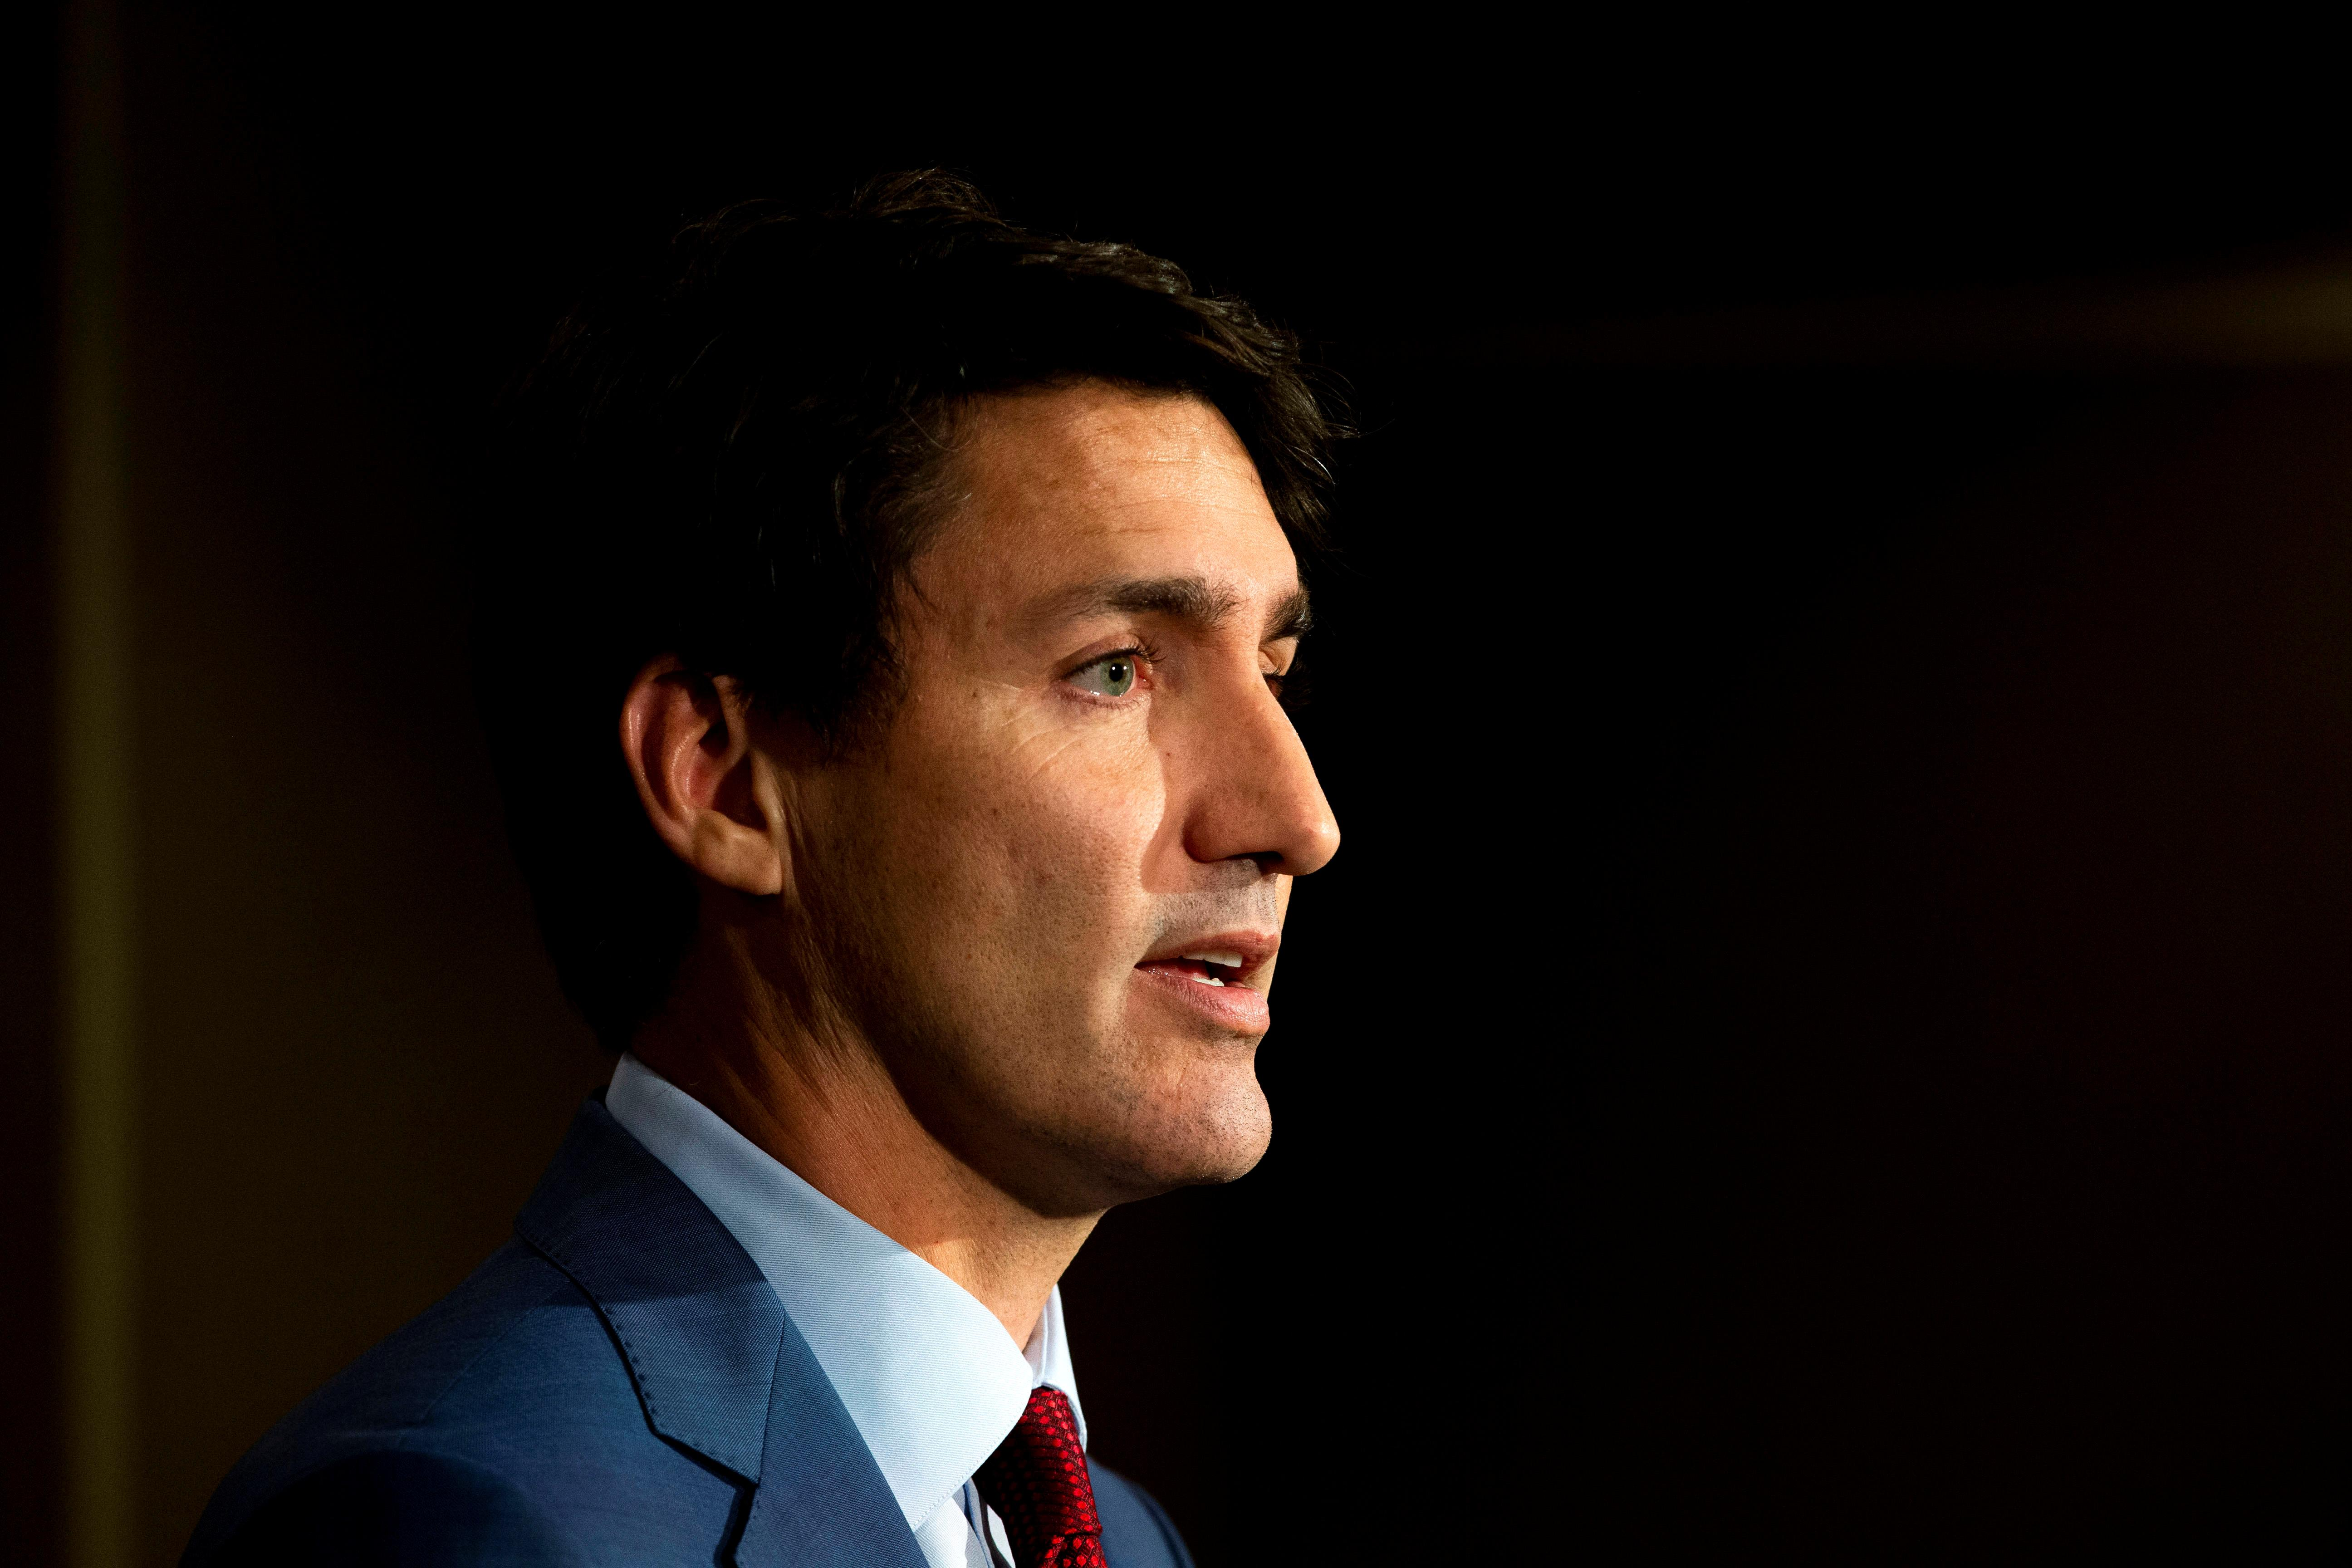 Canada's Trudeau pledges lower taxes, cellphone costs as blackface...